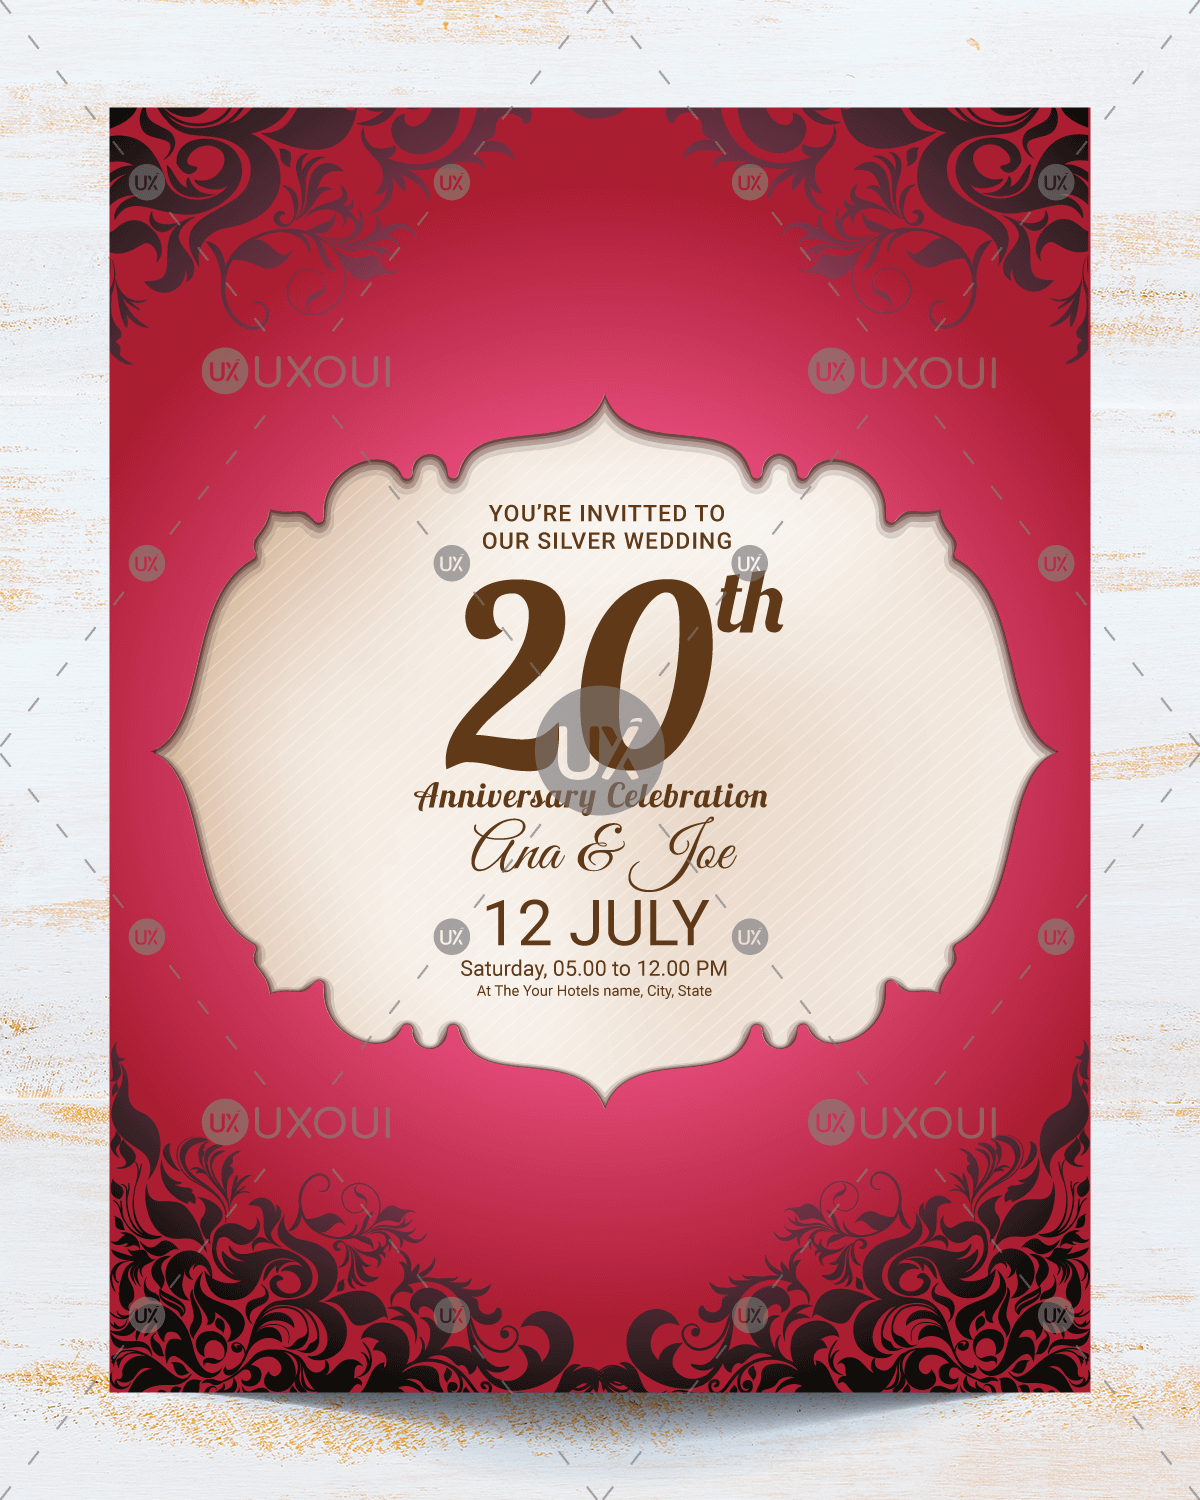 Vintage wedding anniversary invitation card template design vector ...